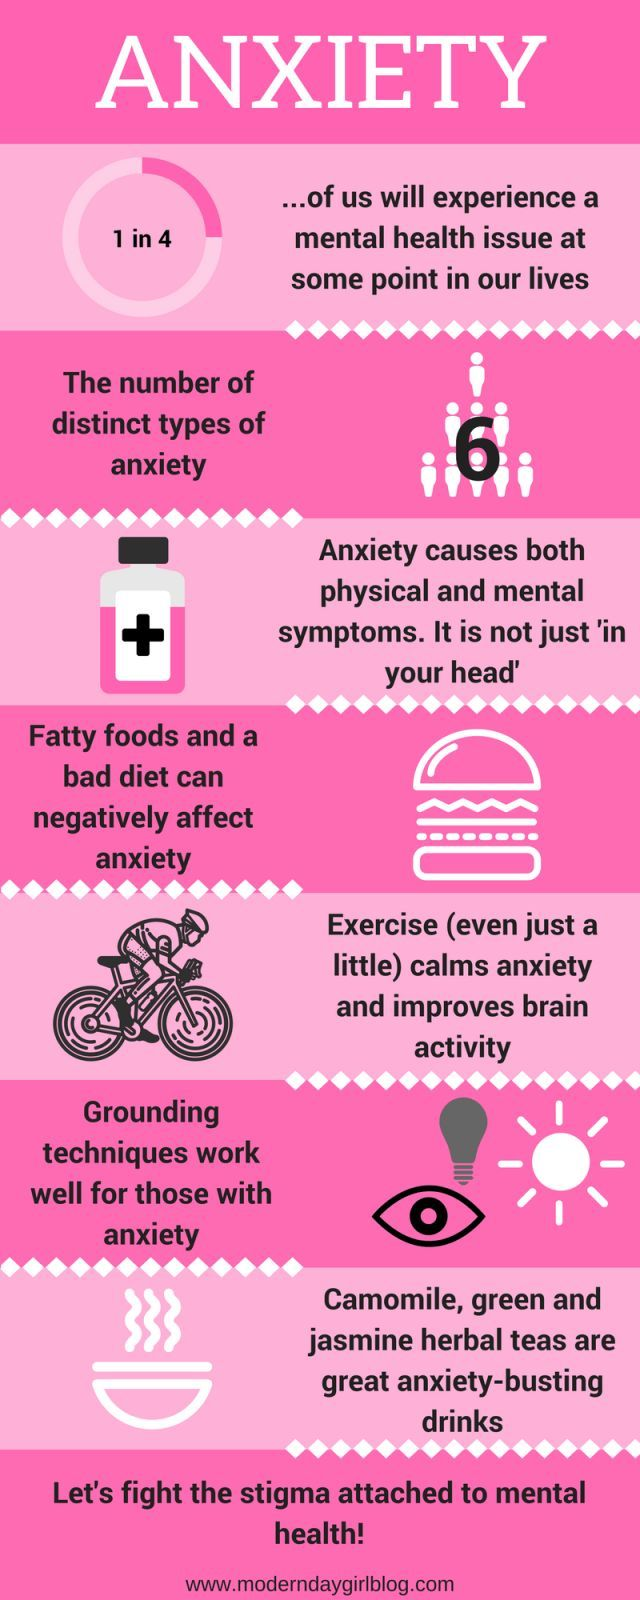 Here's an infographic which shows visually how anxiety affects us all. It includes simple tips and w